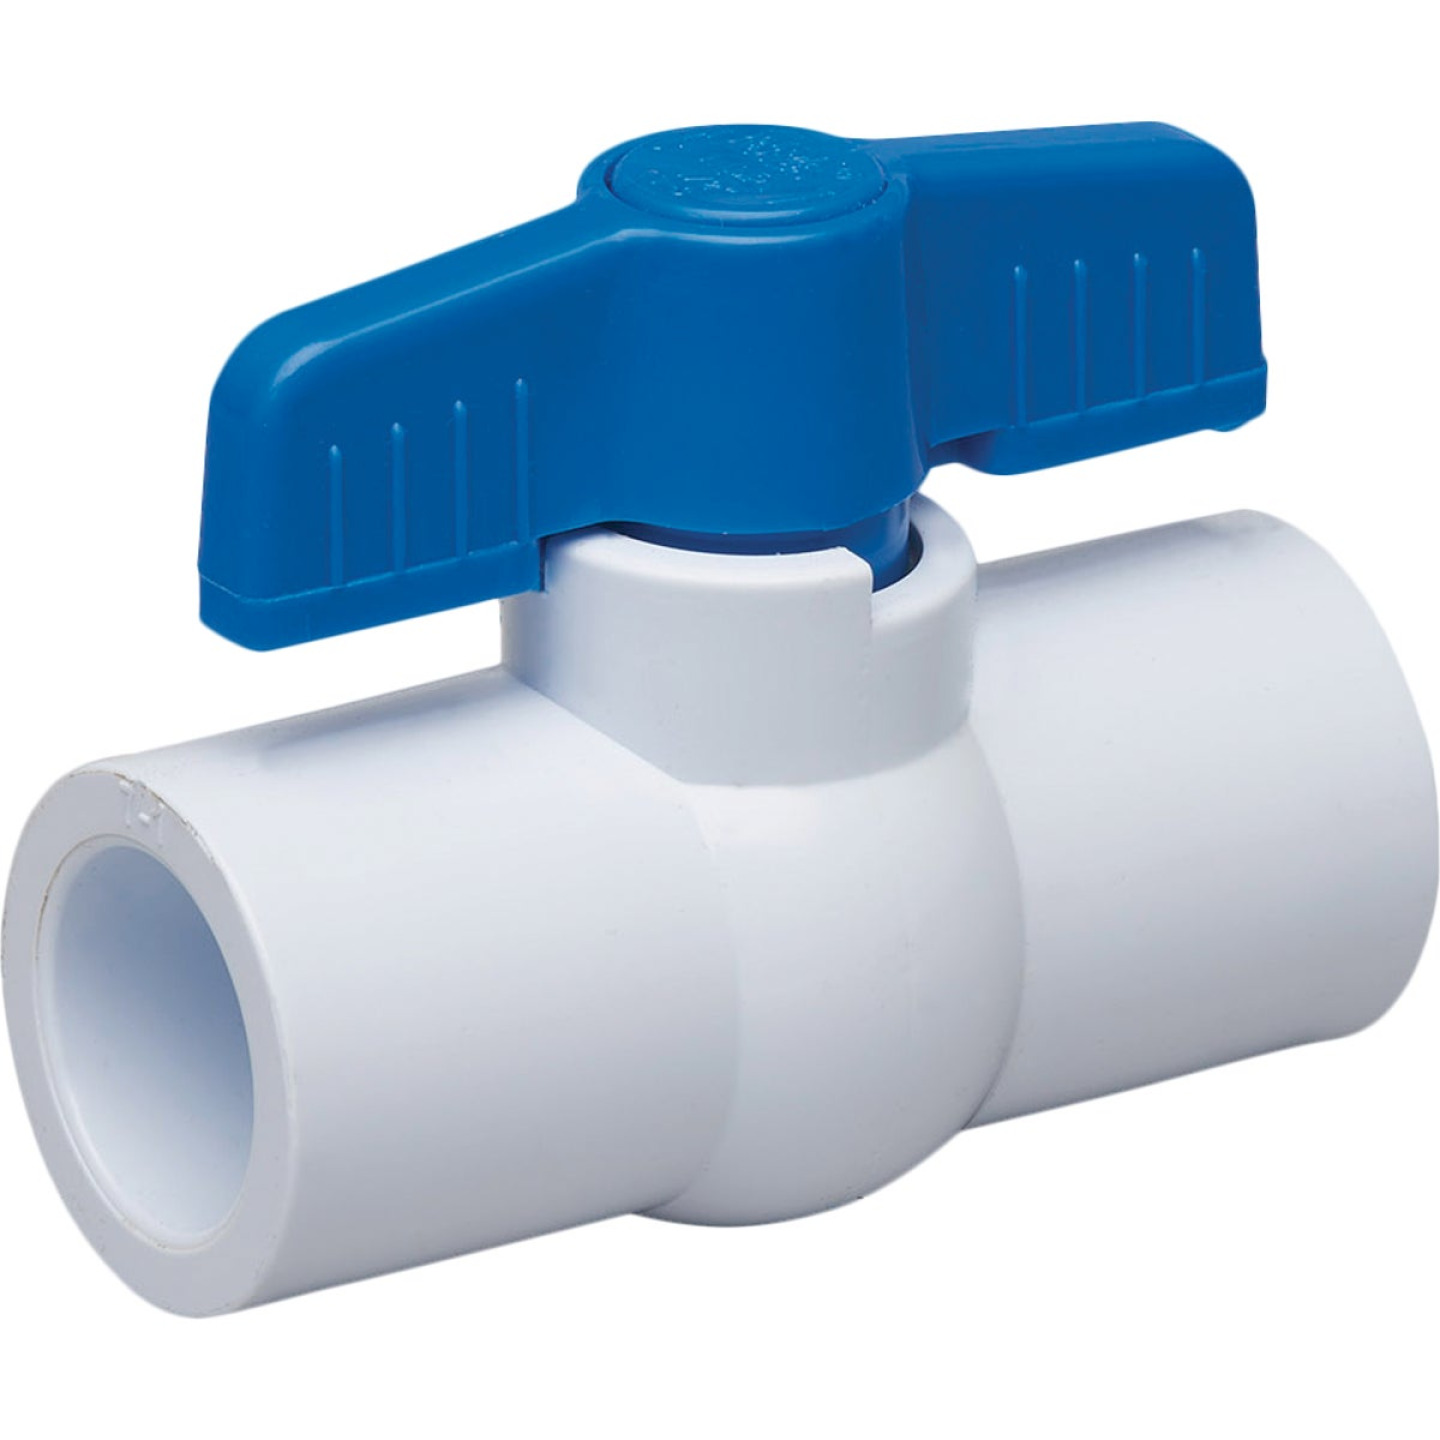 Proline 1/2 In. Solvent x 1/2 In. Solvent PVC Schedule 40 Quarter Turn Ball Valve, Non-NSF Image 1